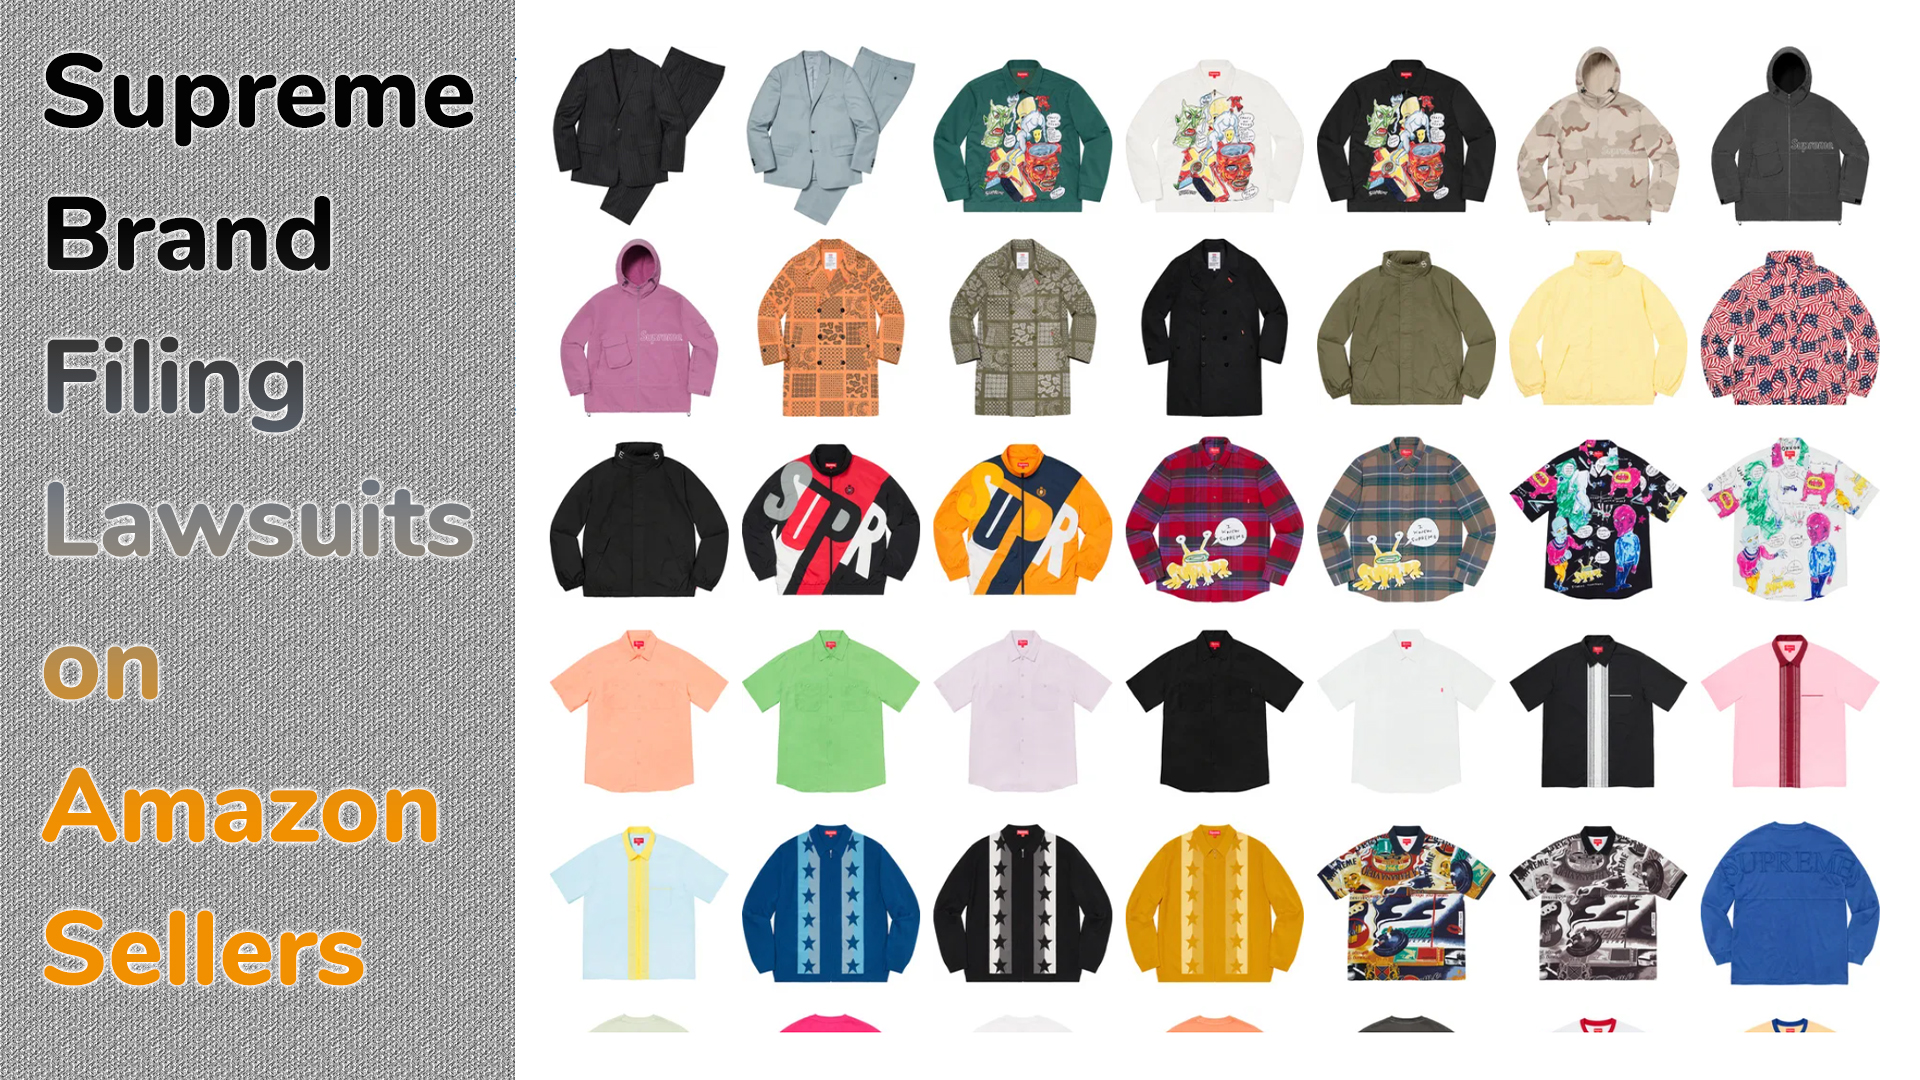 Supreme Brand Filing Lawsuits on Amazon Sellers for Selling Counterfeit Products